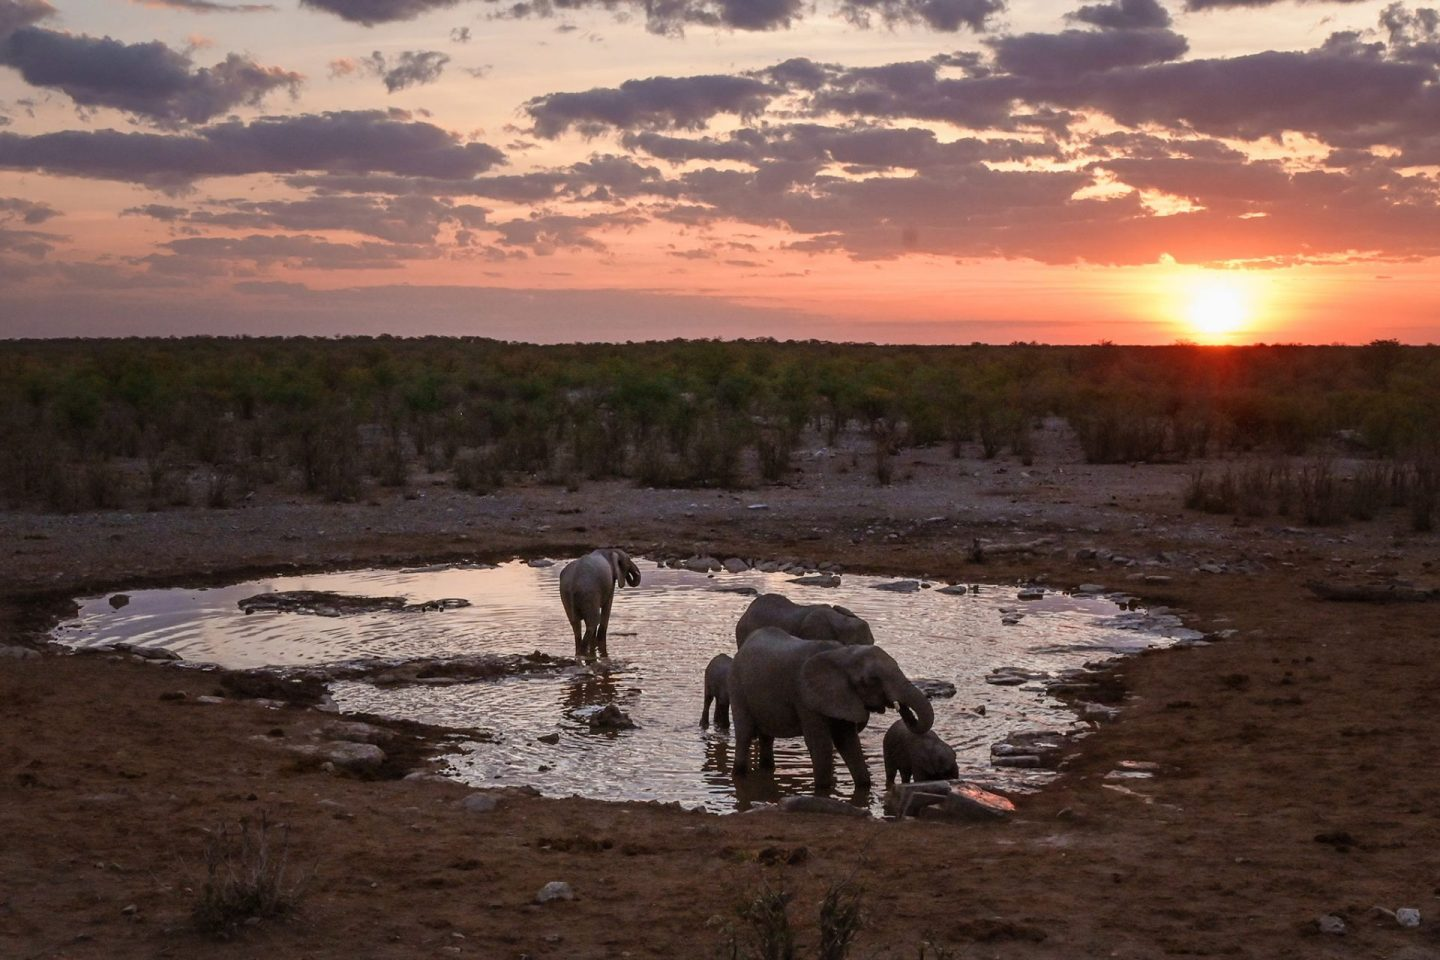 Elephants at Halali Waterhole in Etosha National Park, Namibia